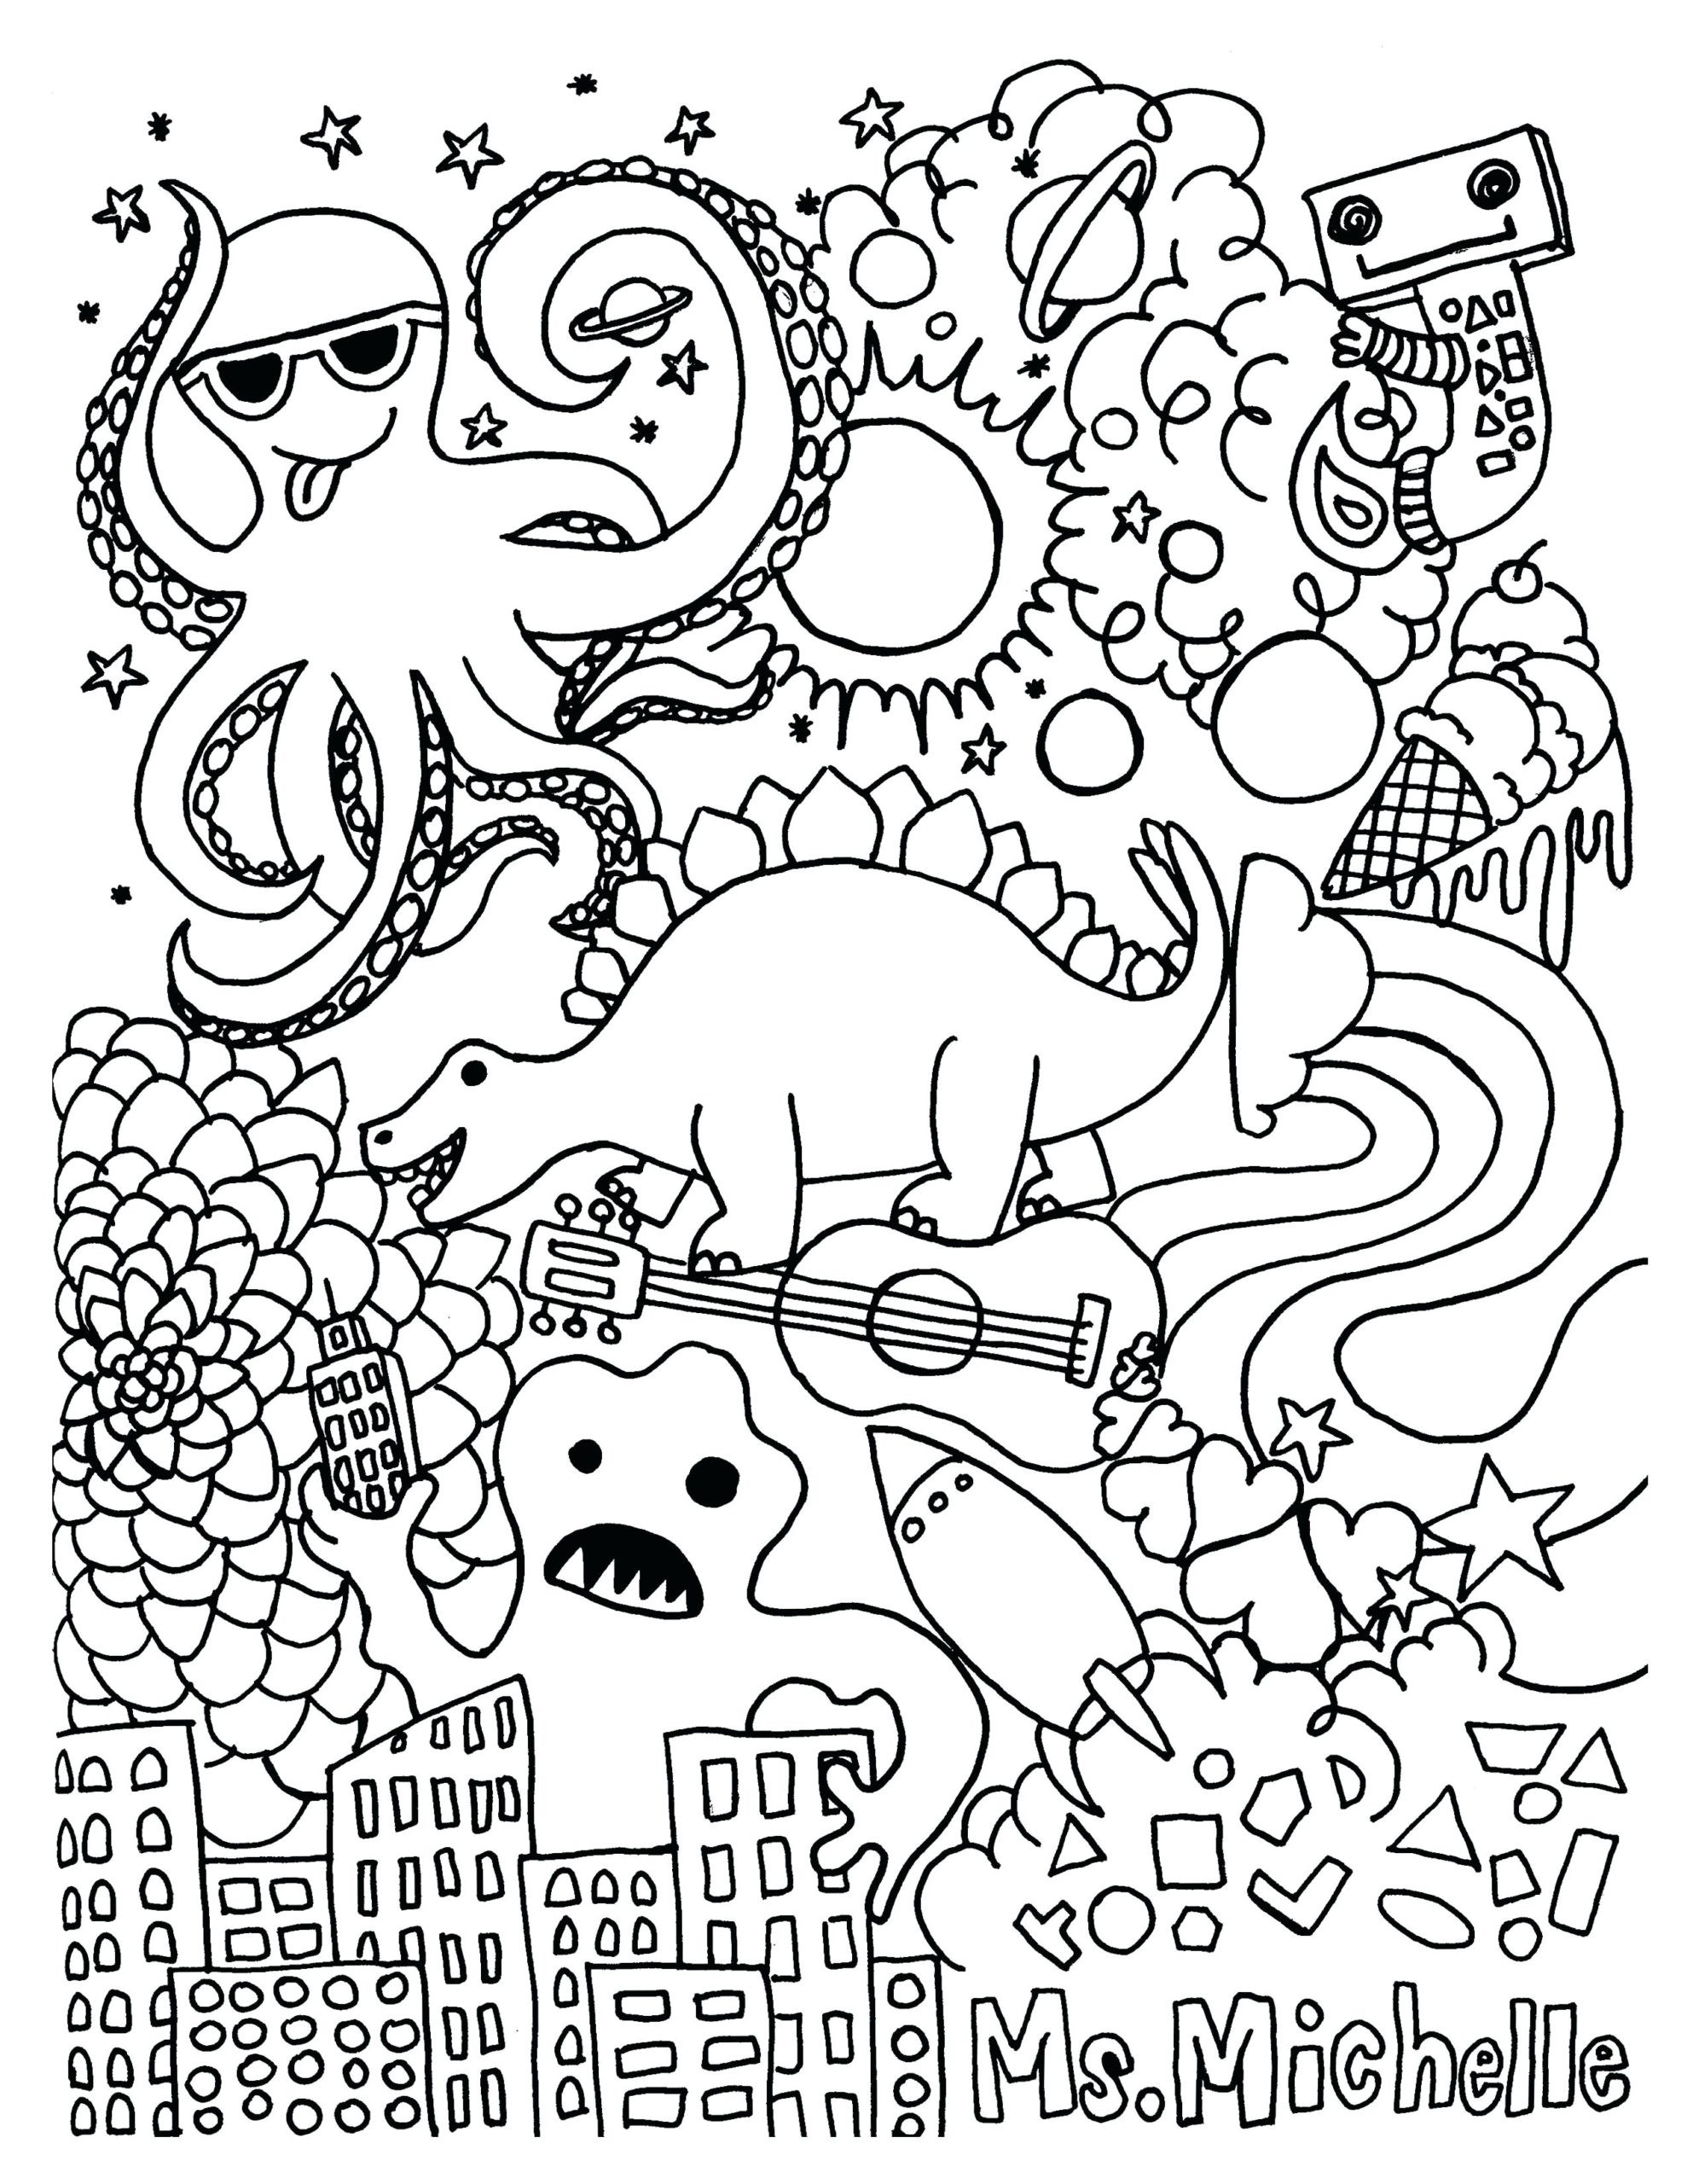 Coloring Pages : Halloween Coloring Pictures Free Printable